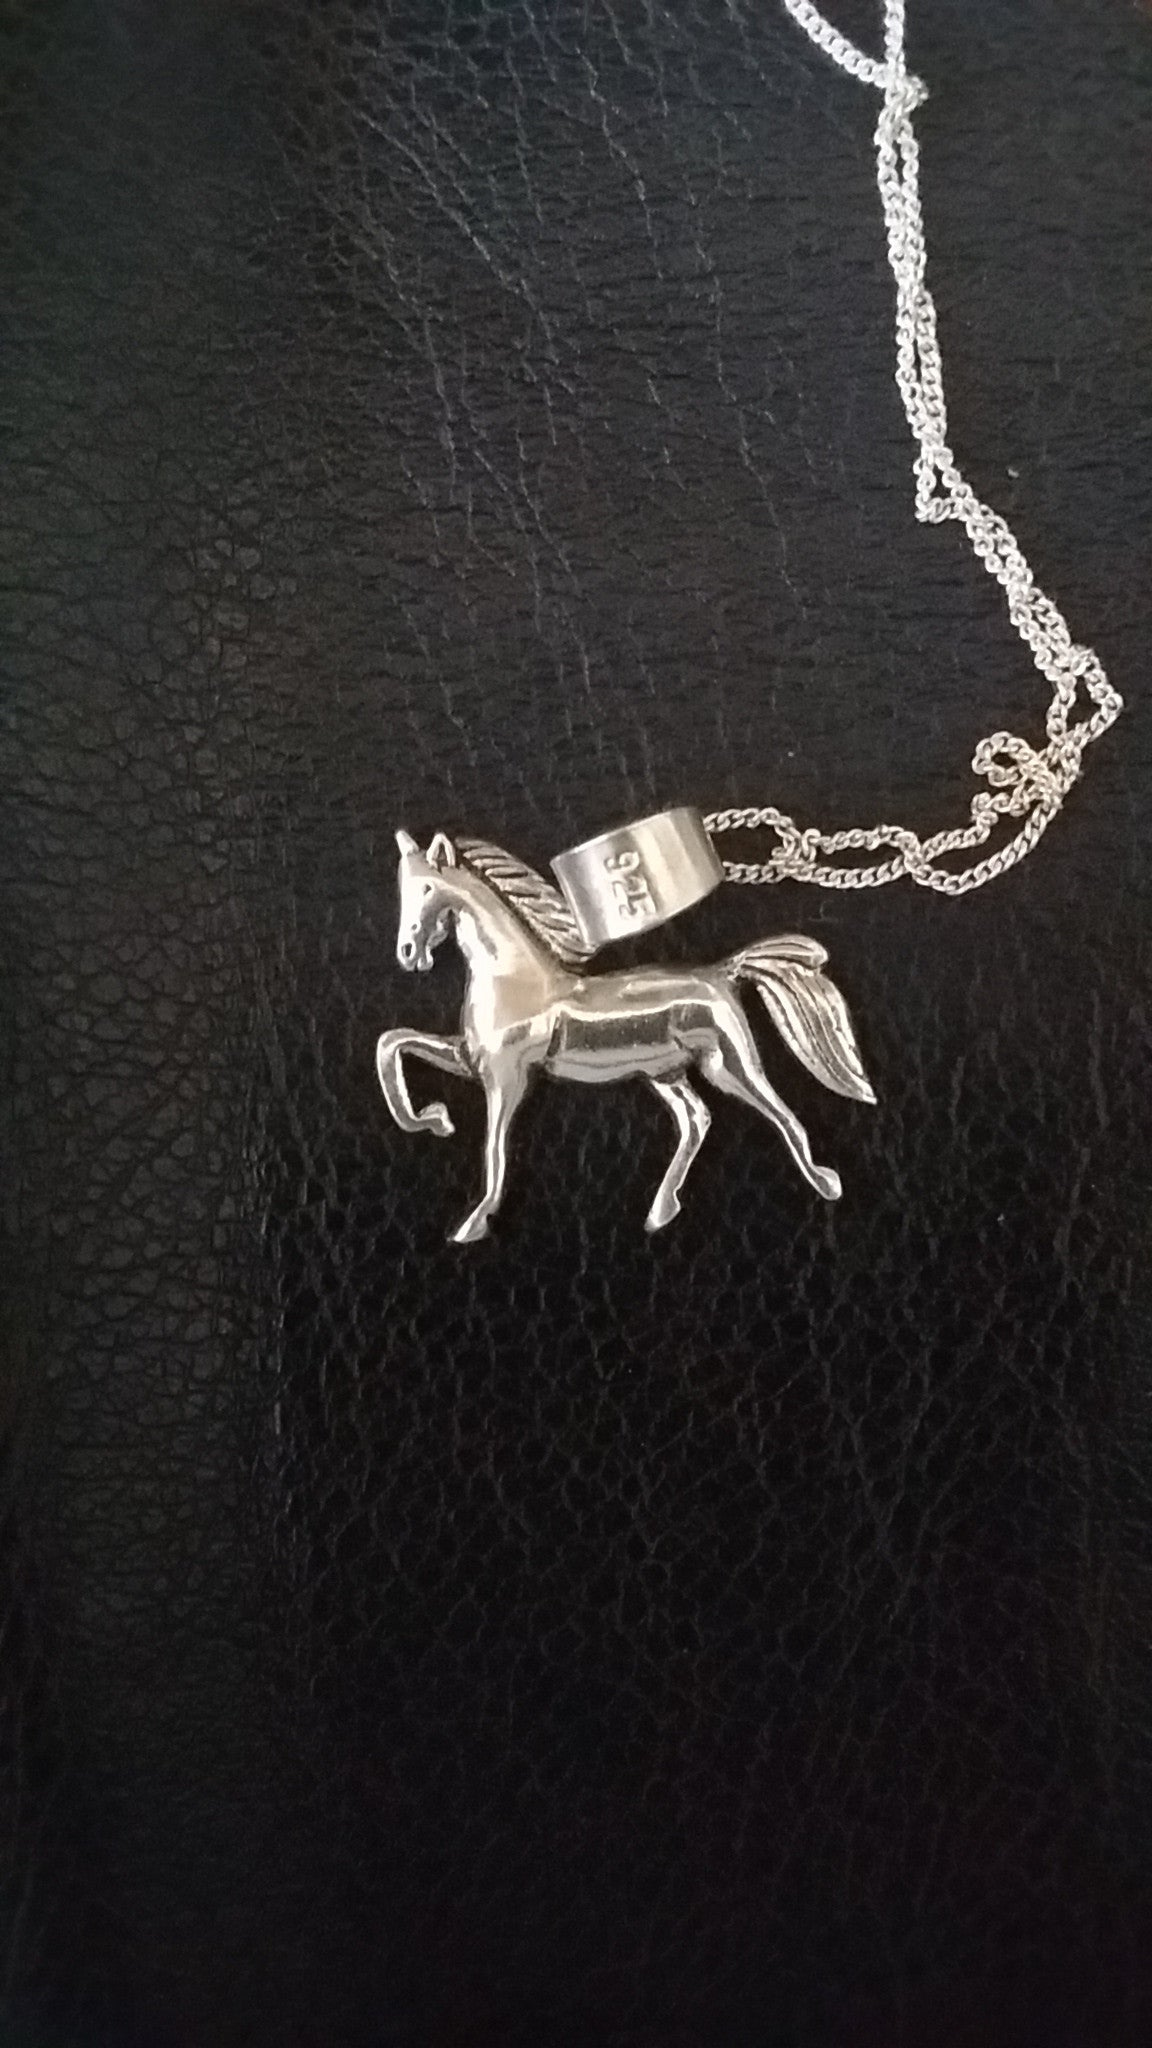 Sterling silver horsey pendants - Pendant - GoldSnaffle